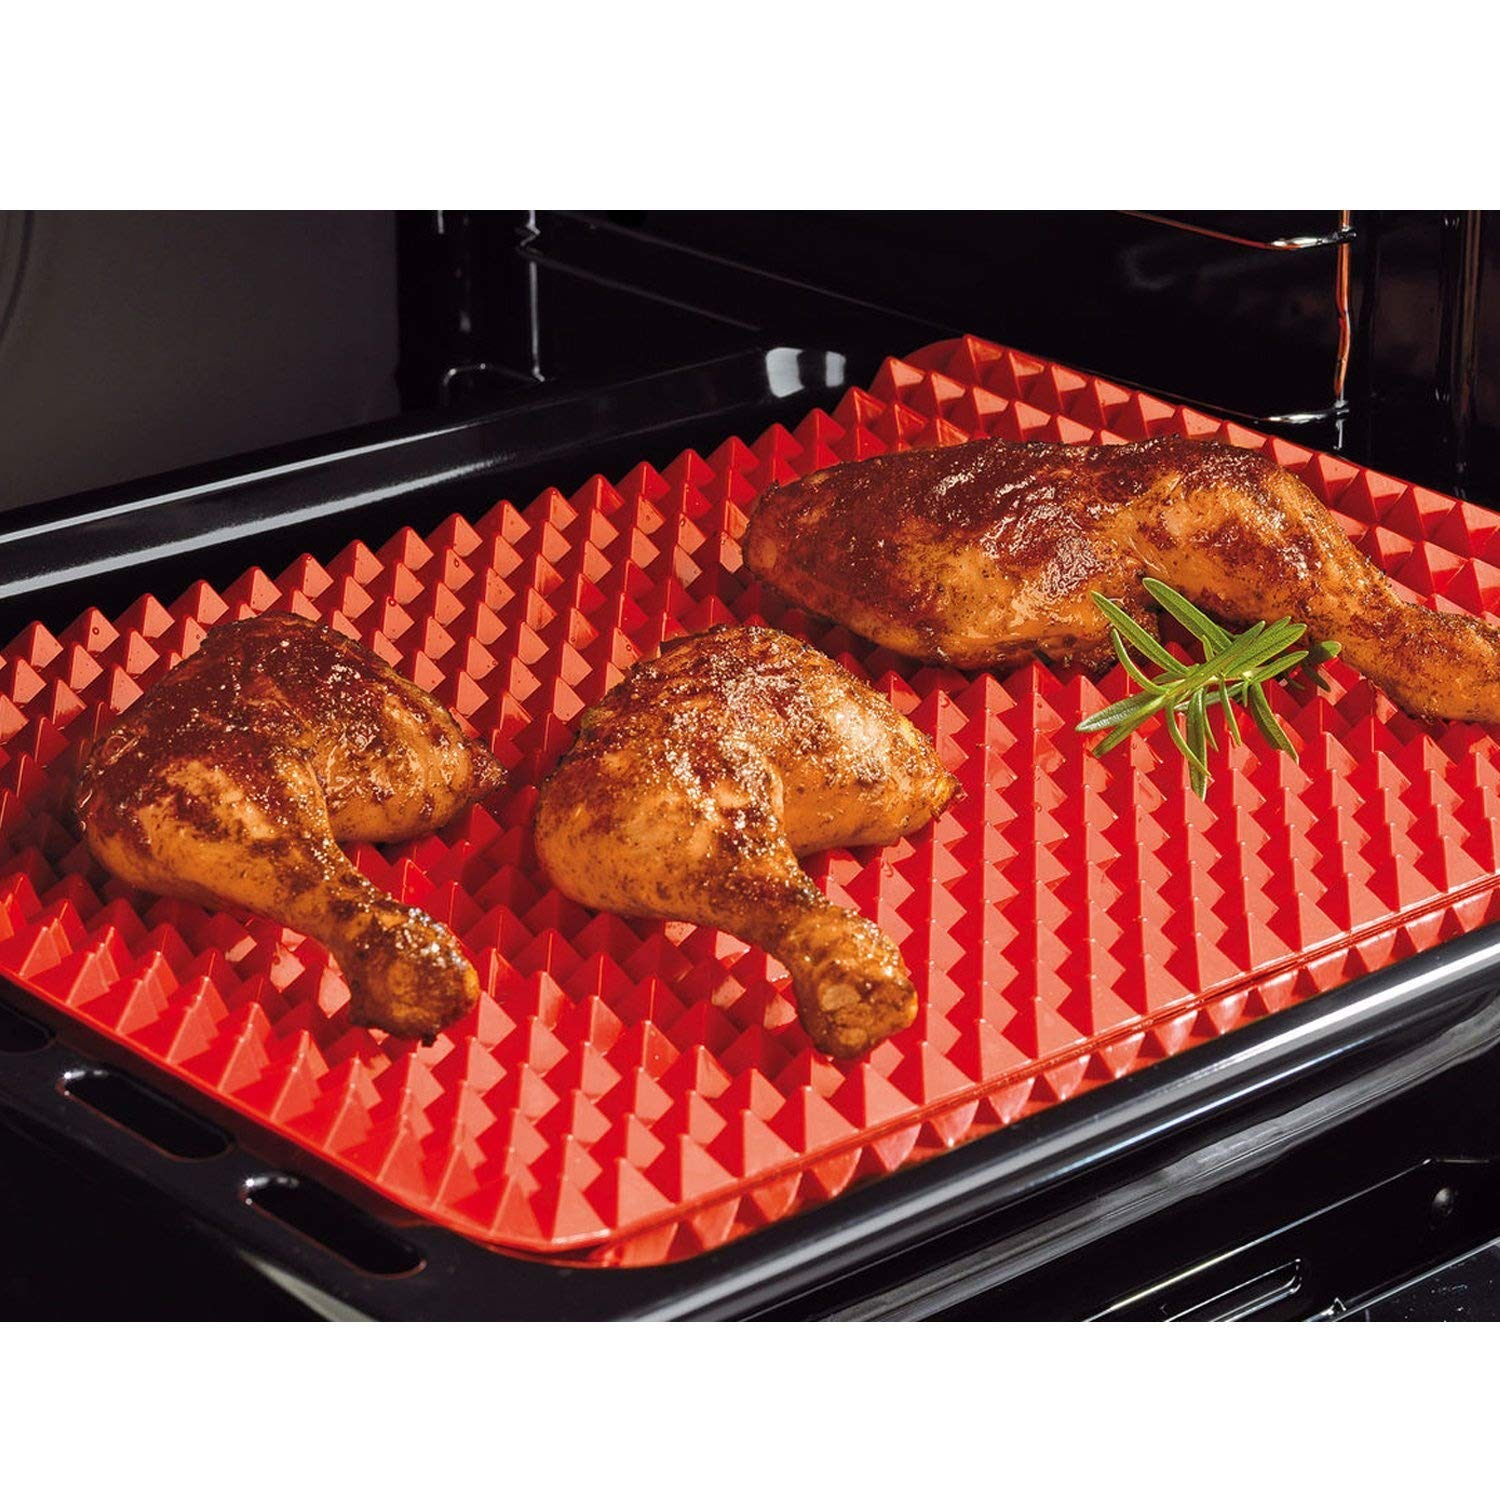 Silicone Pyramid Pan Non Stick Baking Tray Oven Cooking Mat Dishwasher Safe